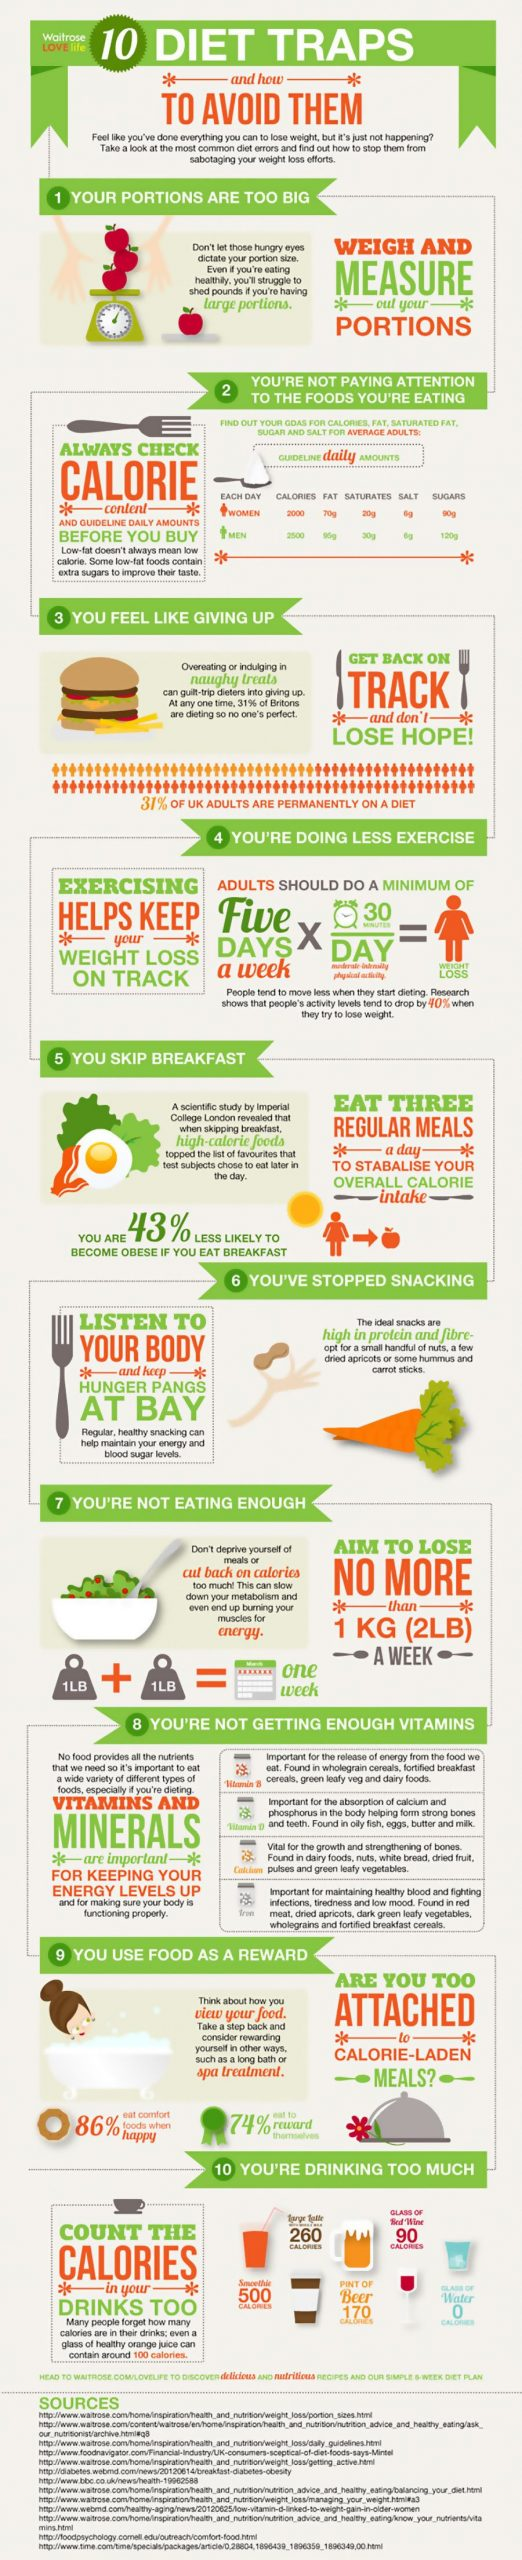 Dieting For Weight Loss Infographic